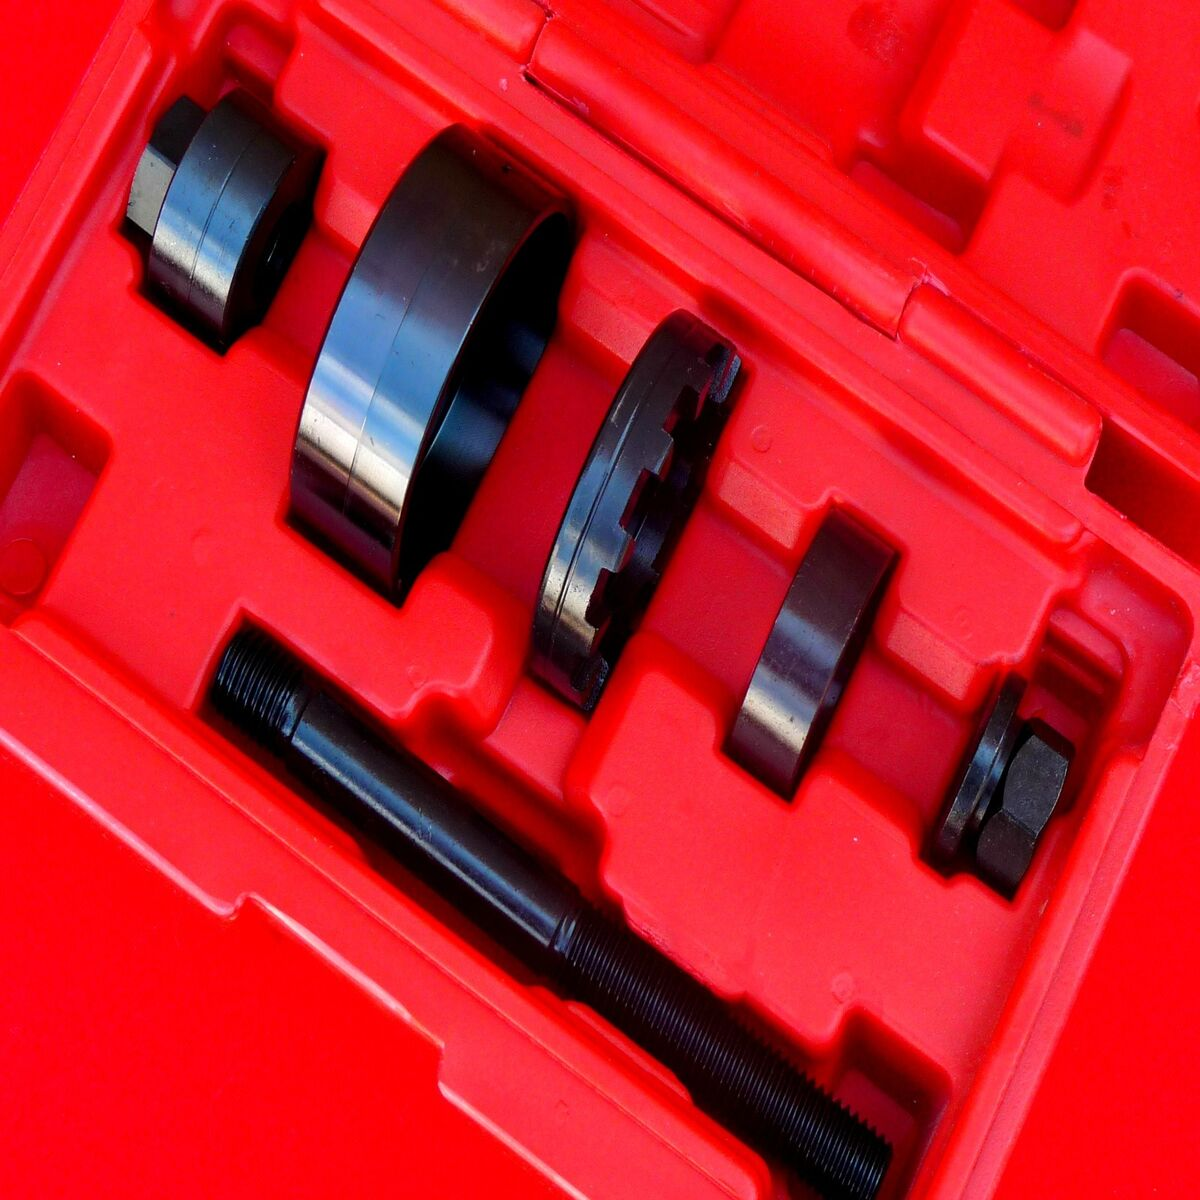 Ford Mondeo Bush Removal Install Tool Rear Axle Sub Frame Bush Extractor 01 13